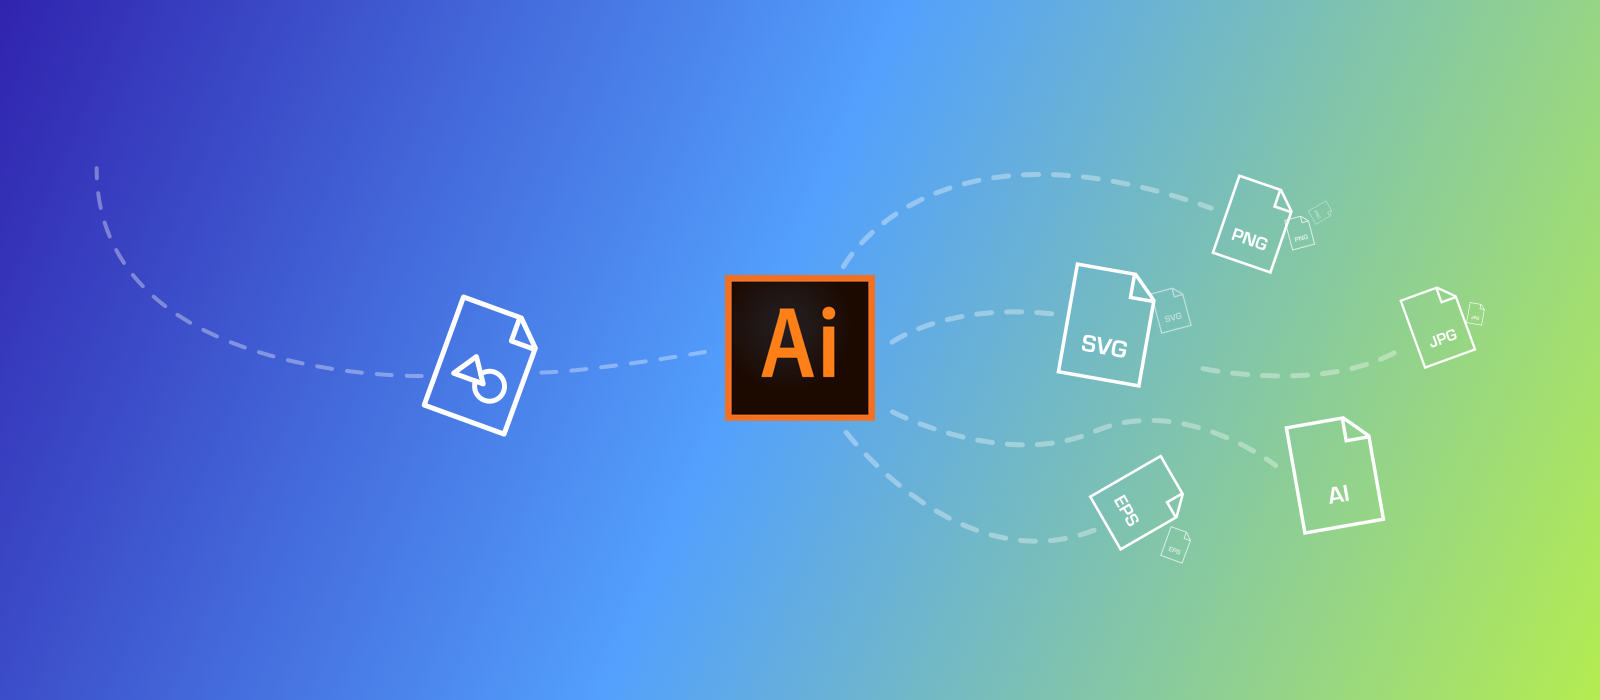 How to export vector icons to multiple sizes and formats in Adobe.